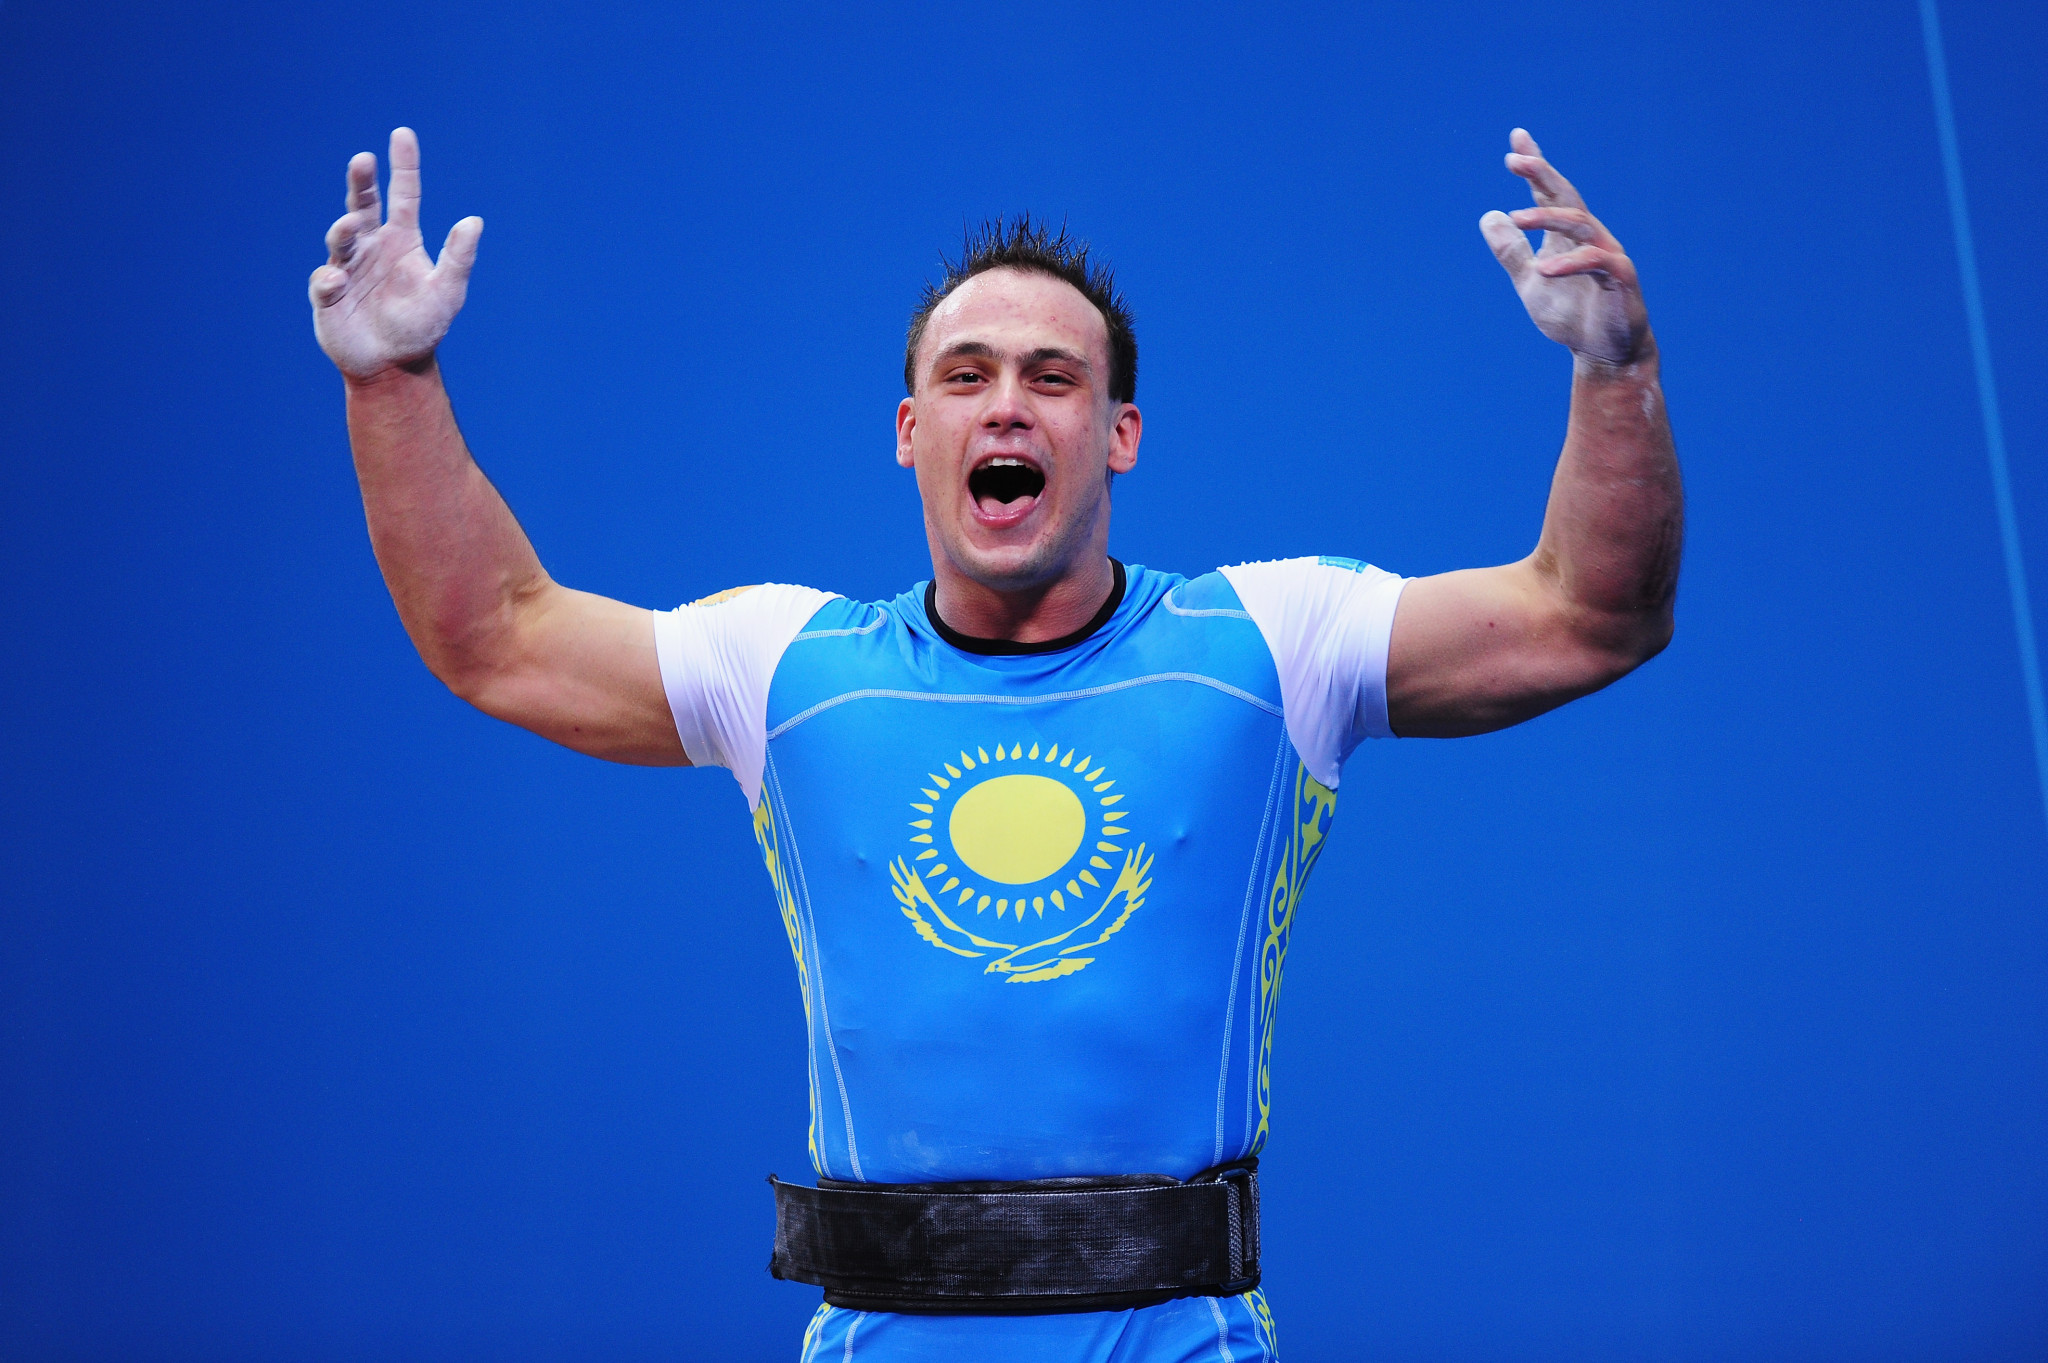 Kazakhstan's serial drugs cheat Ilya Ilyin is still hopeful of making Tokyo 2020 having already been stripped of Olympic gold medals from Beijing 2008 and London 2012 because of doping ©Getty Images